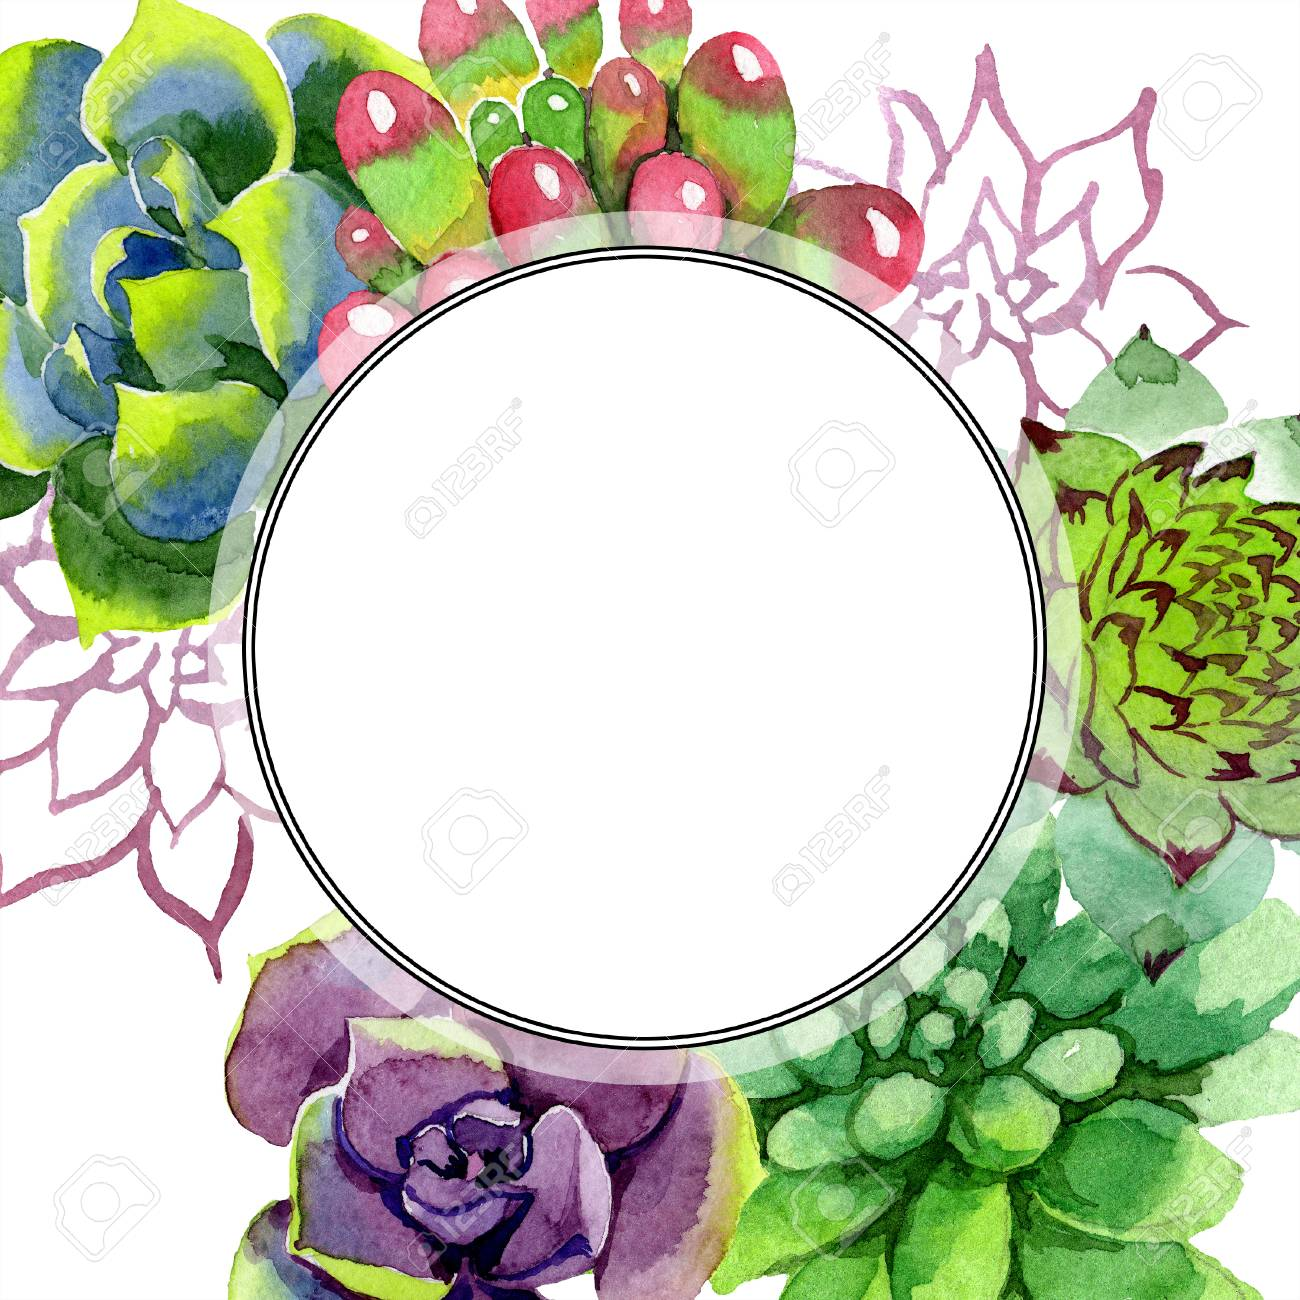 Amazing Succulent Floral Botanical Flower Watercolor Background Stock Photo Picture And Royalty Free Image Image 113293790